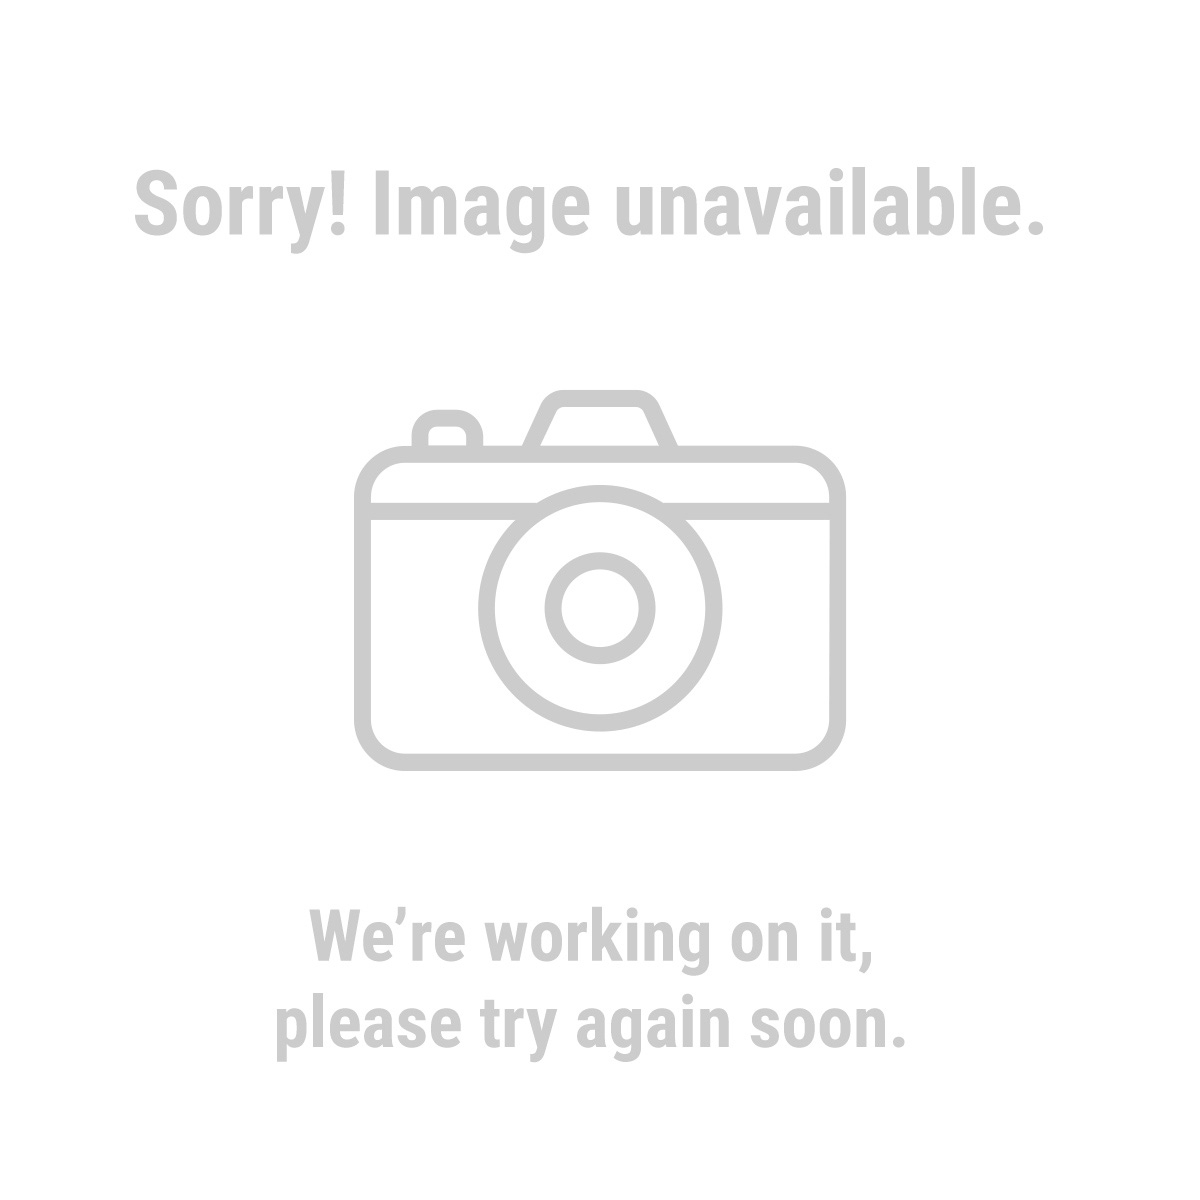 Bike Rack Hitch Mount Bike Hitch Mount Bike Rack